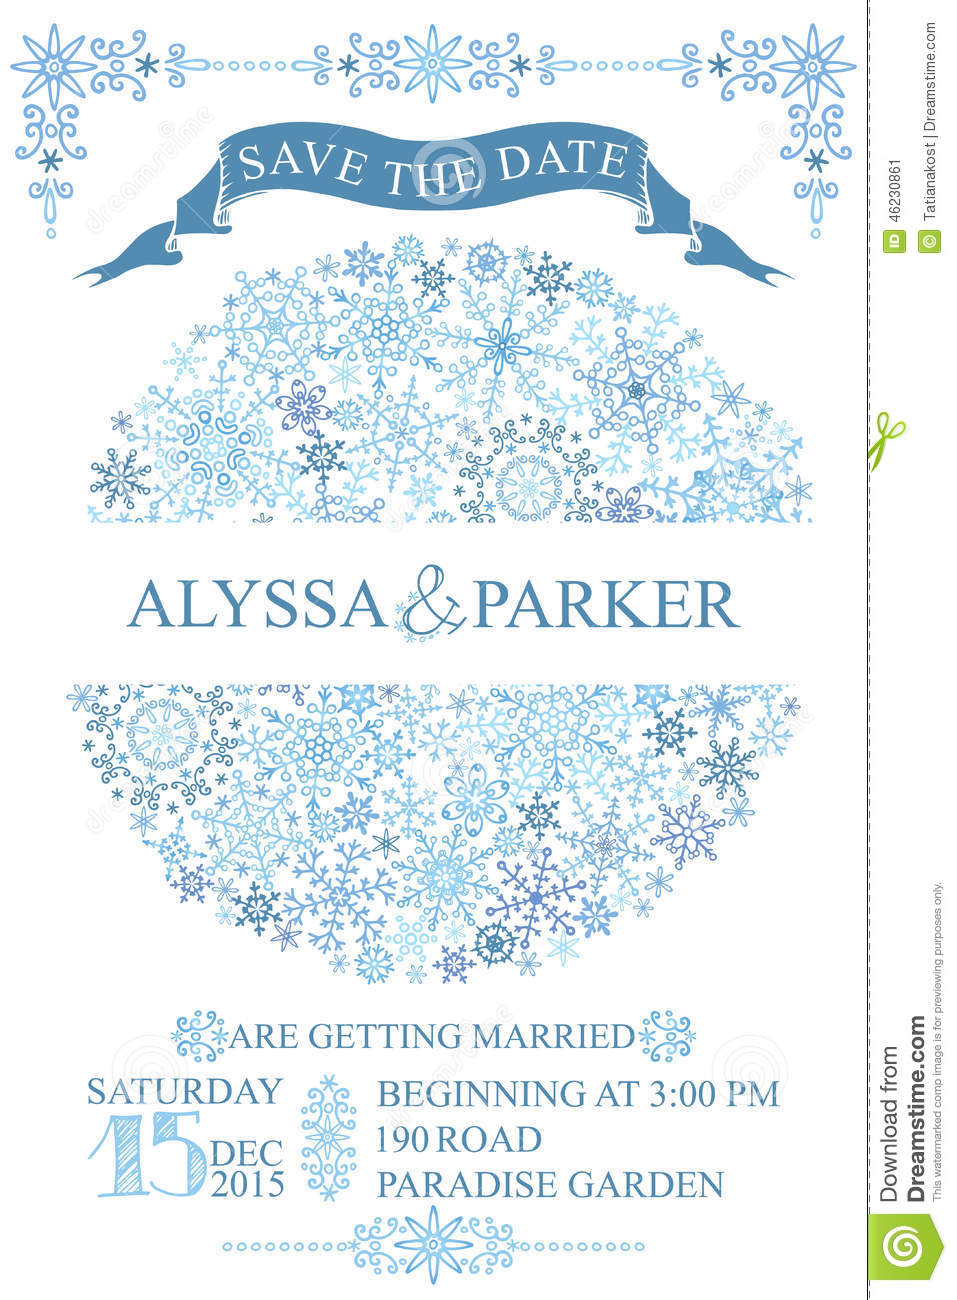 Winter Wedding Save Date Card.Snowflakes Circle Stock Photo.